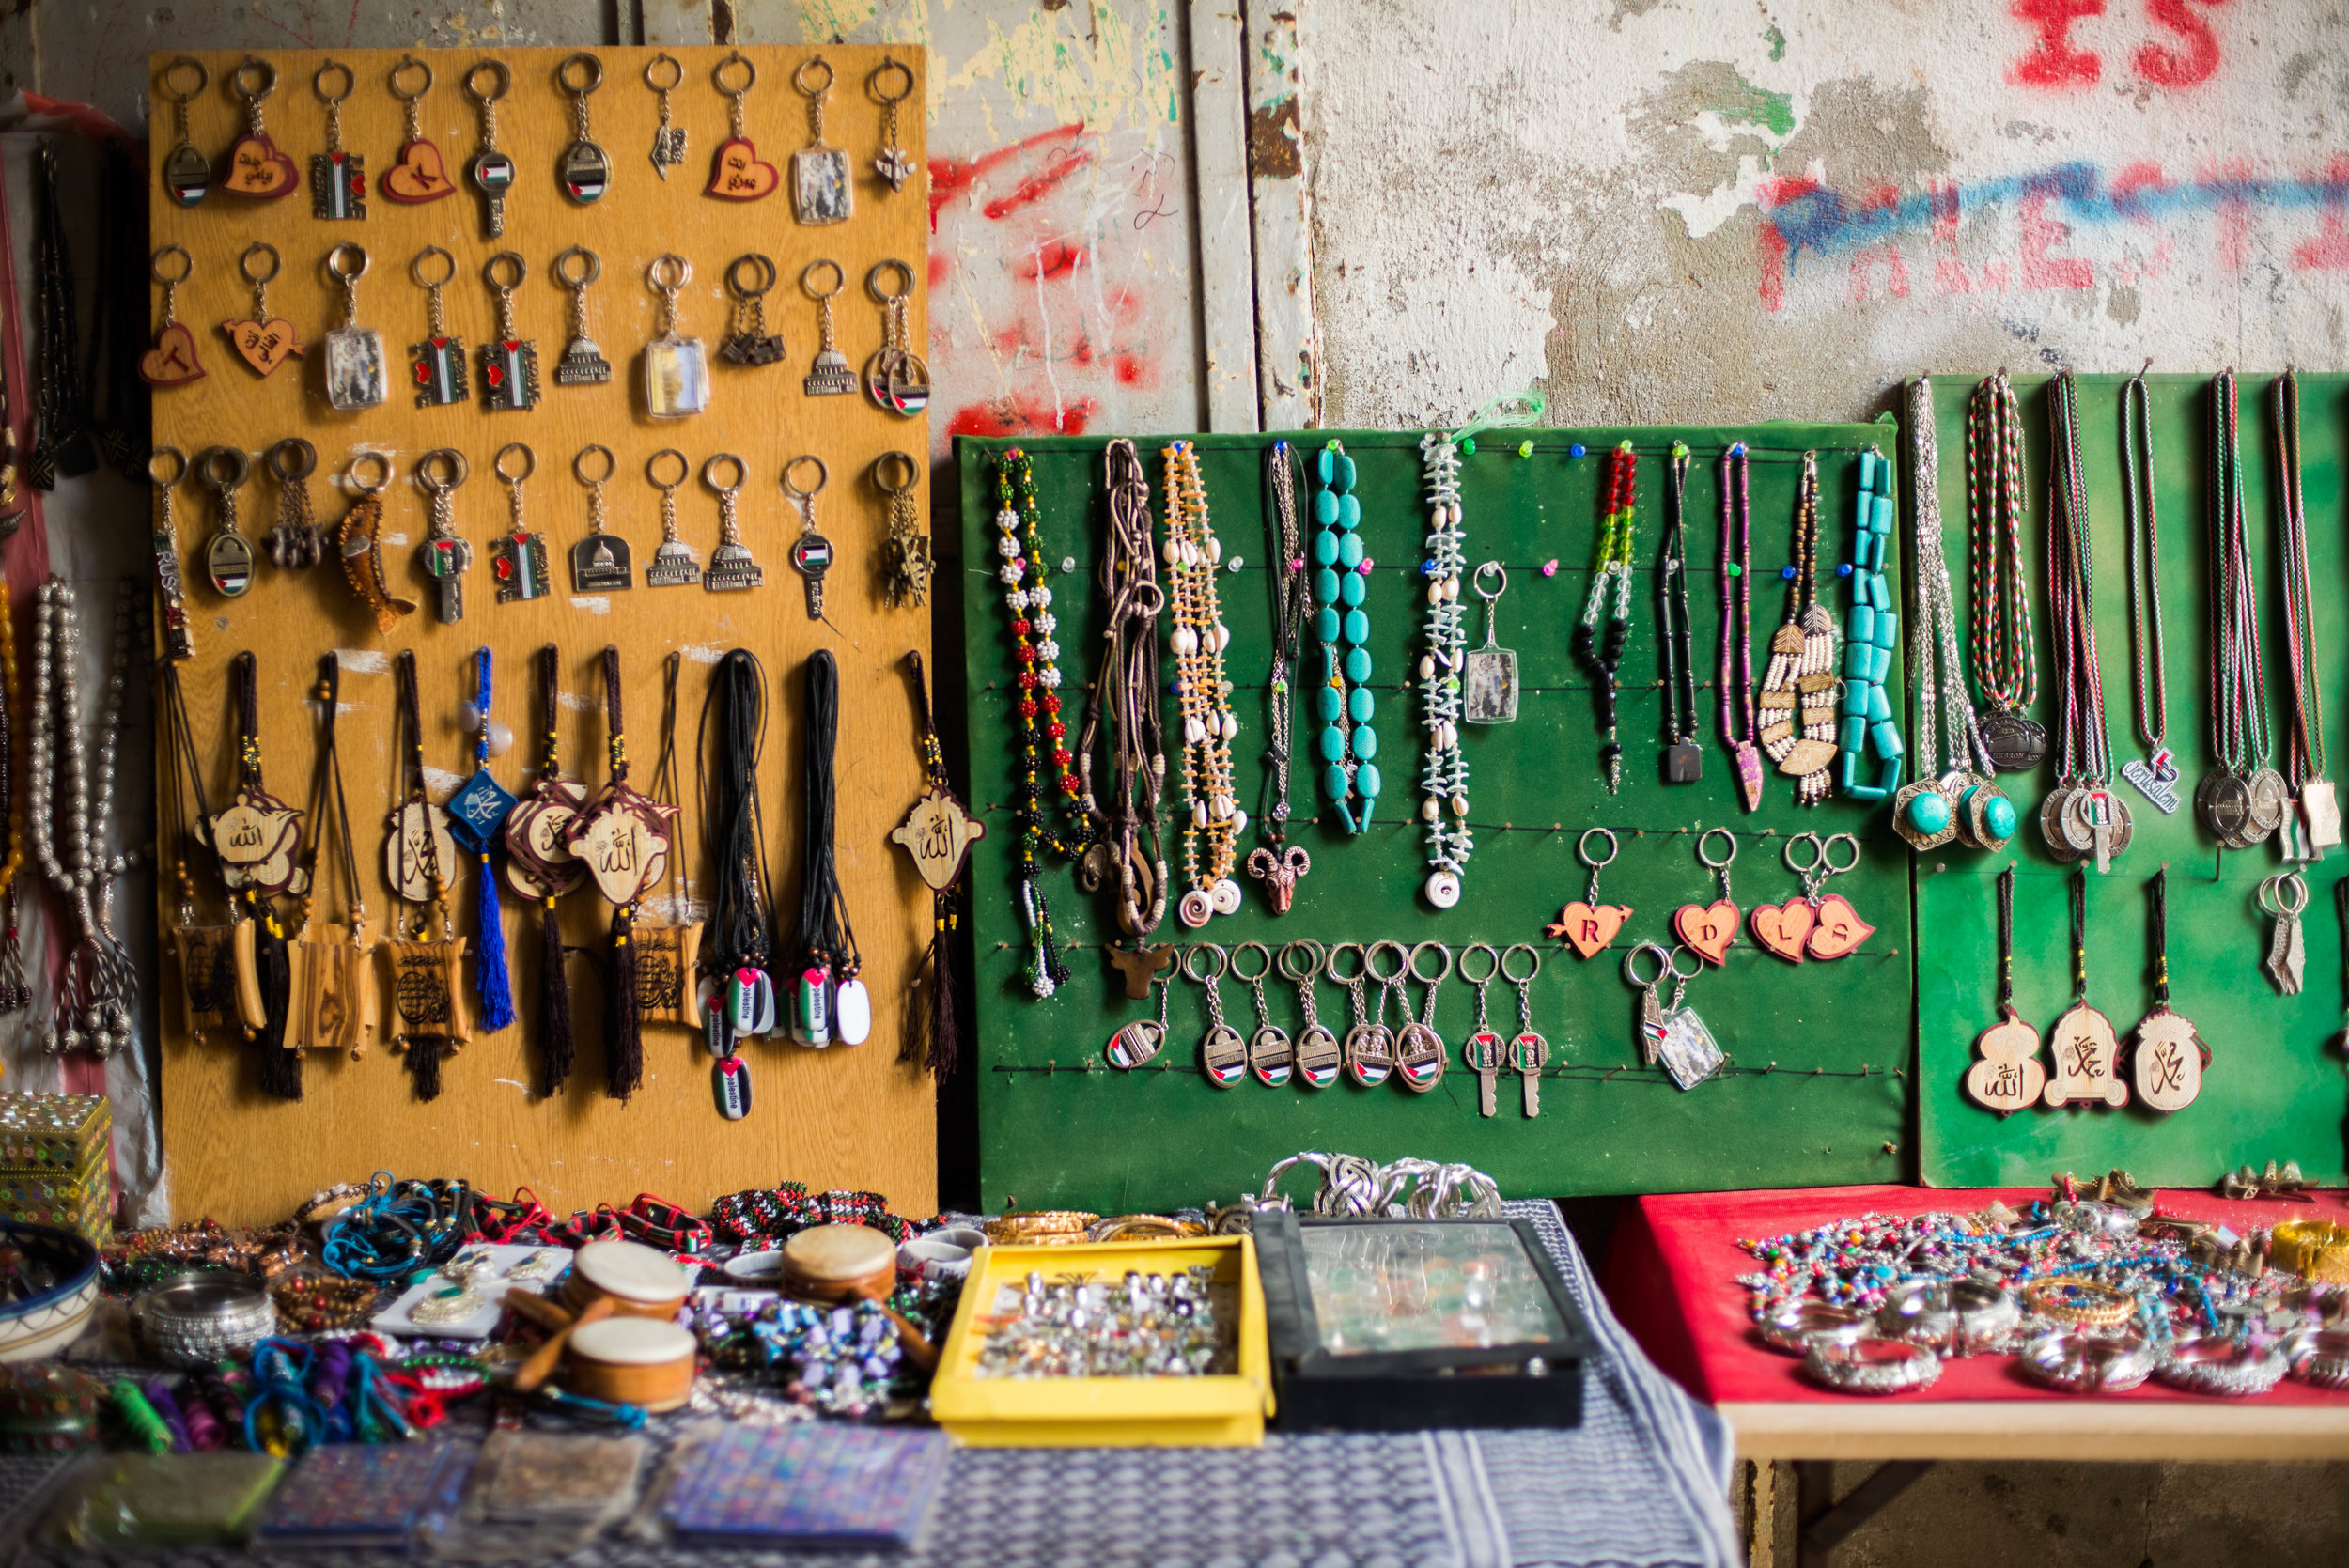 Some of the crafts made by the cooperative are set out on the table in the Old City of Hebron market in H1.